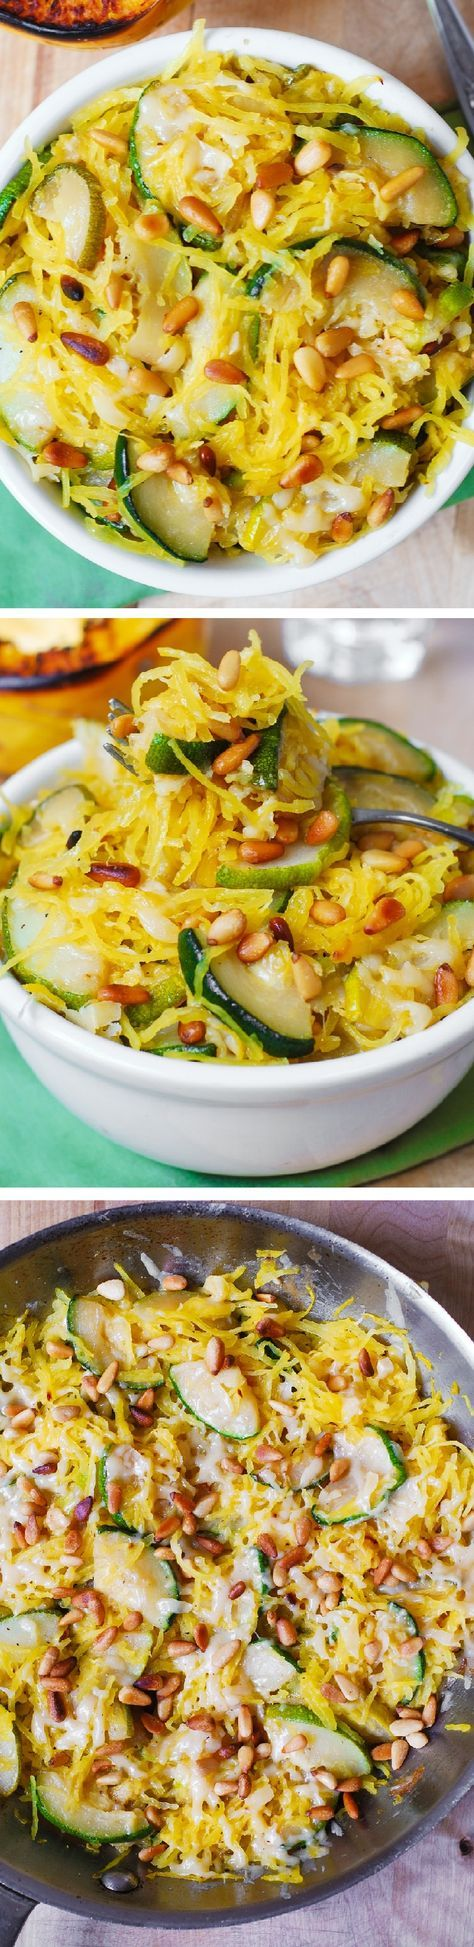 Zucchini cooked with garlic in olive oil, mixed with spaghetti squash, topped with melted, freshly grated, Parmesan cheese and then sprinkled with toasted pine nuts.